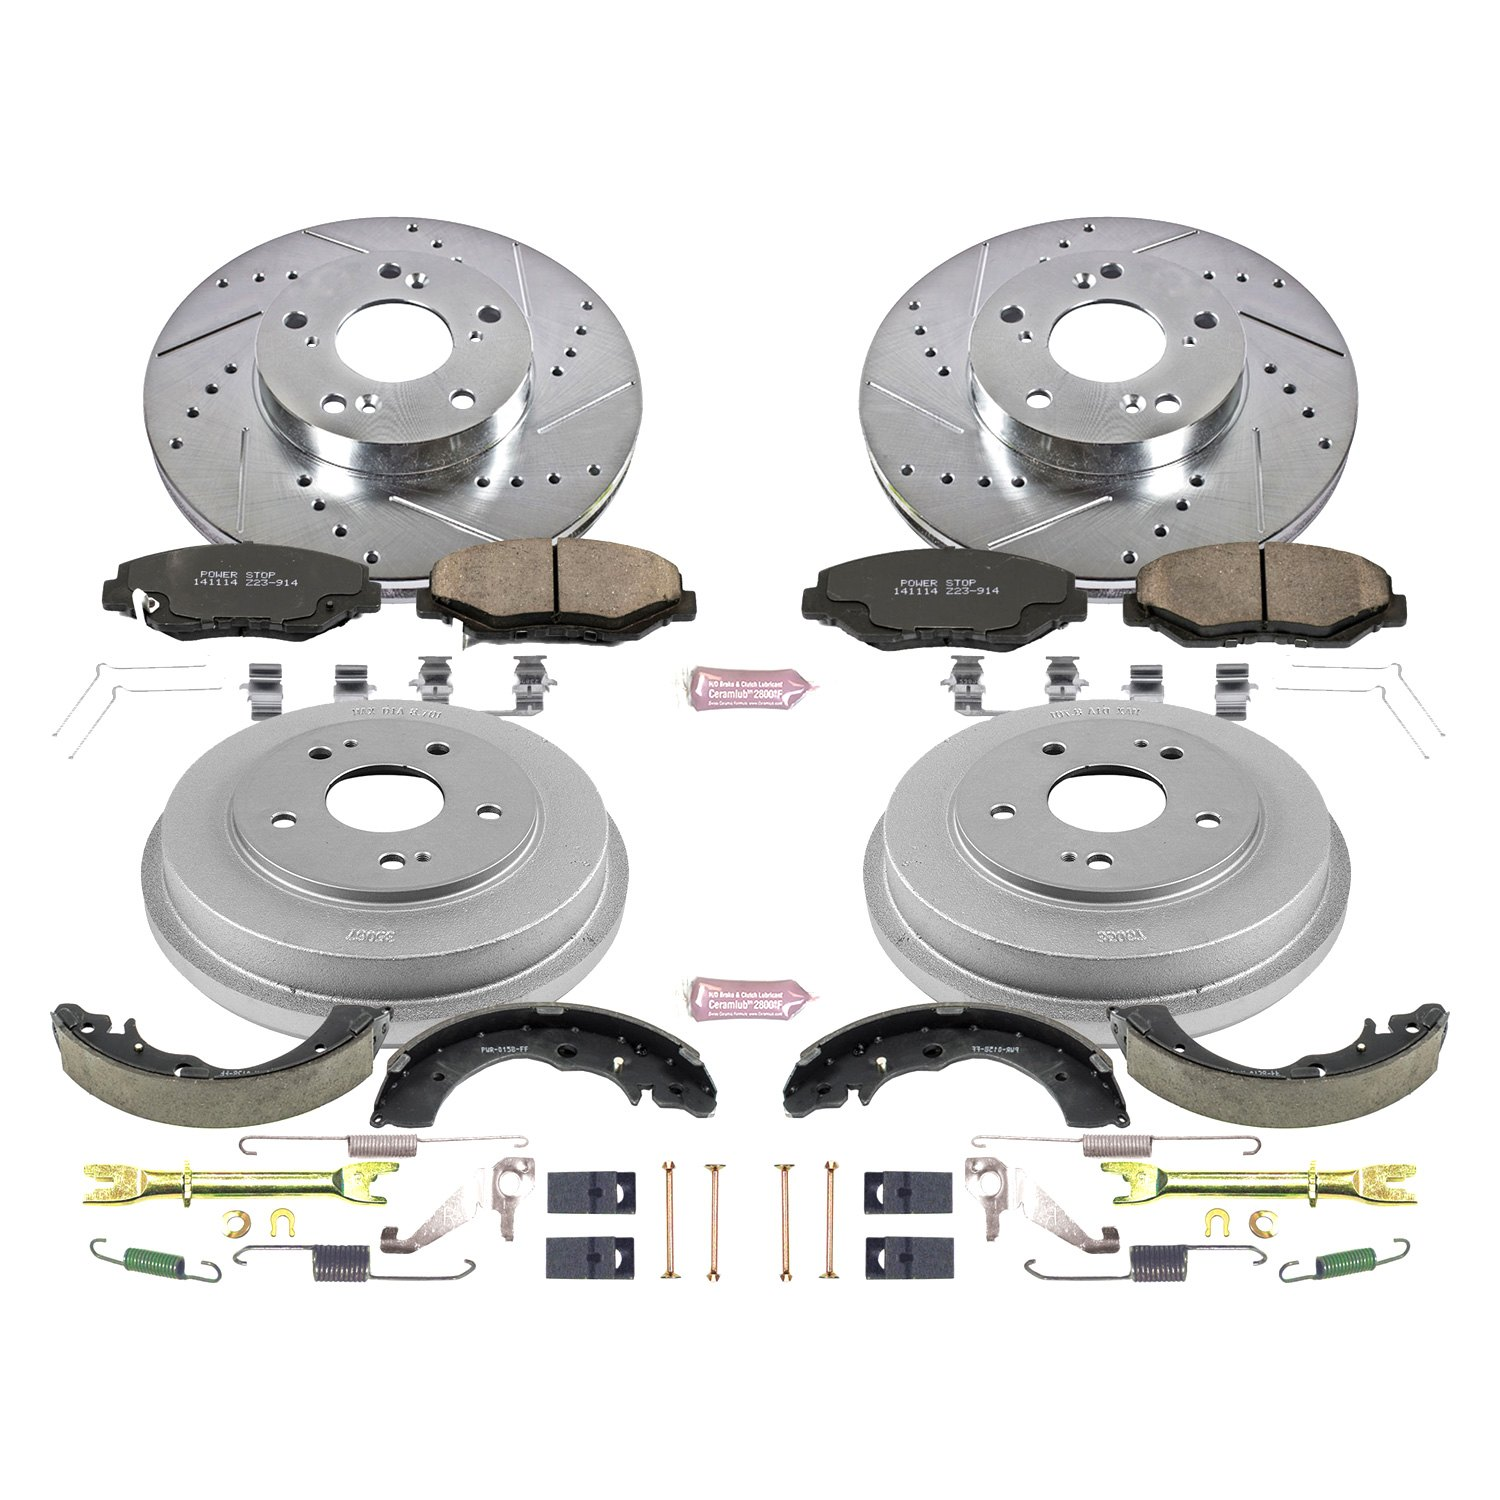 Rotor Power Stop Front /& Rear K15107DK Performance Pad Drum and Shoe Kits